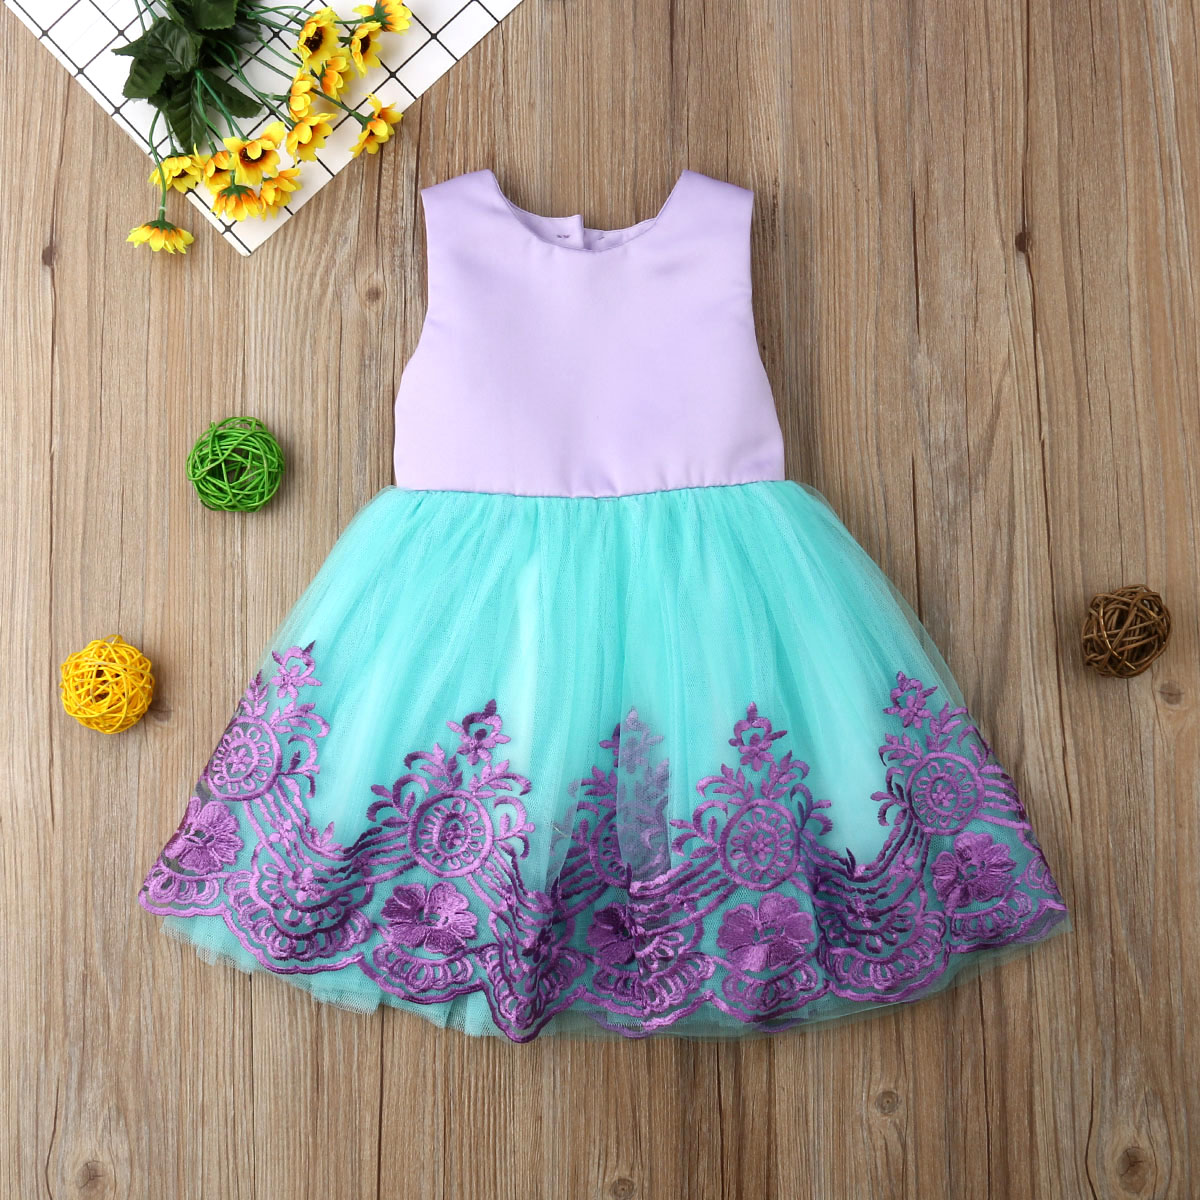 Toddler Baby Girls Dres Summer Sleeveless Pageant Party Princess Formal Bridesmaid Gown Kids Tutu Dress Girls Lace Dresses